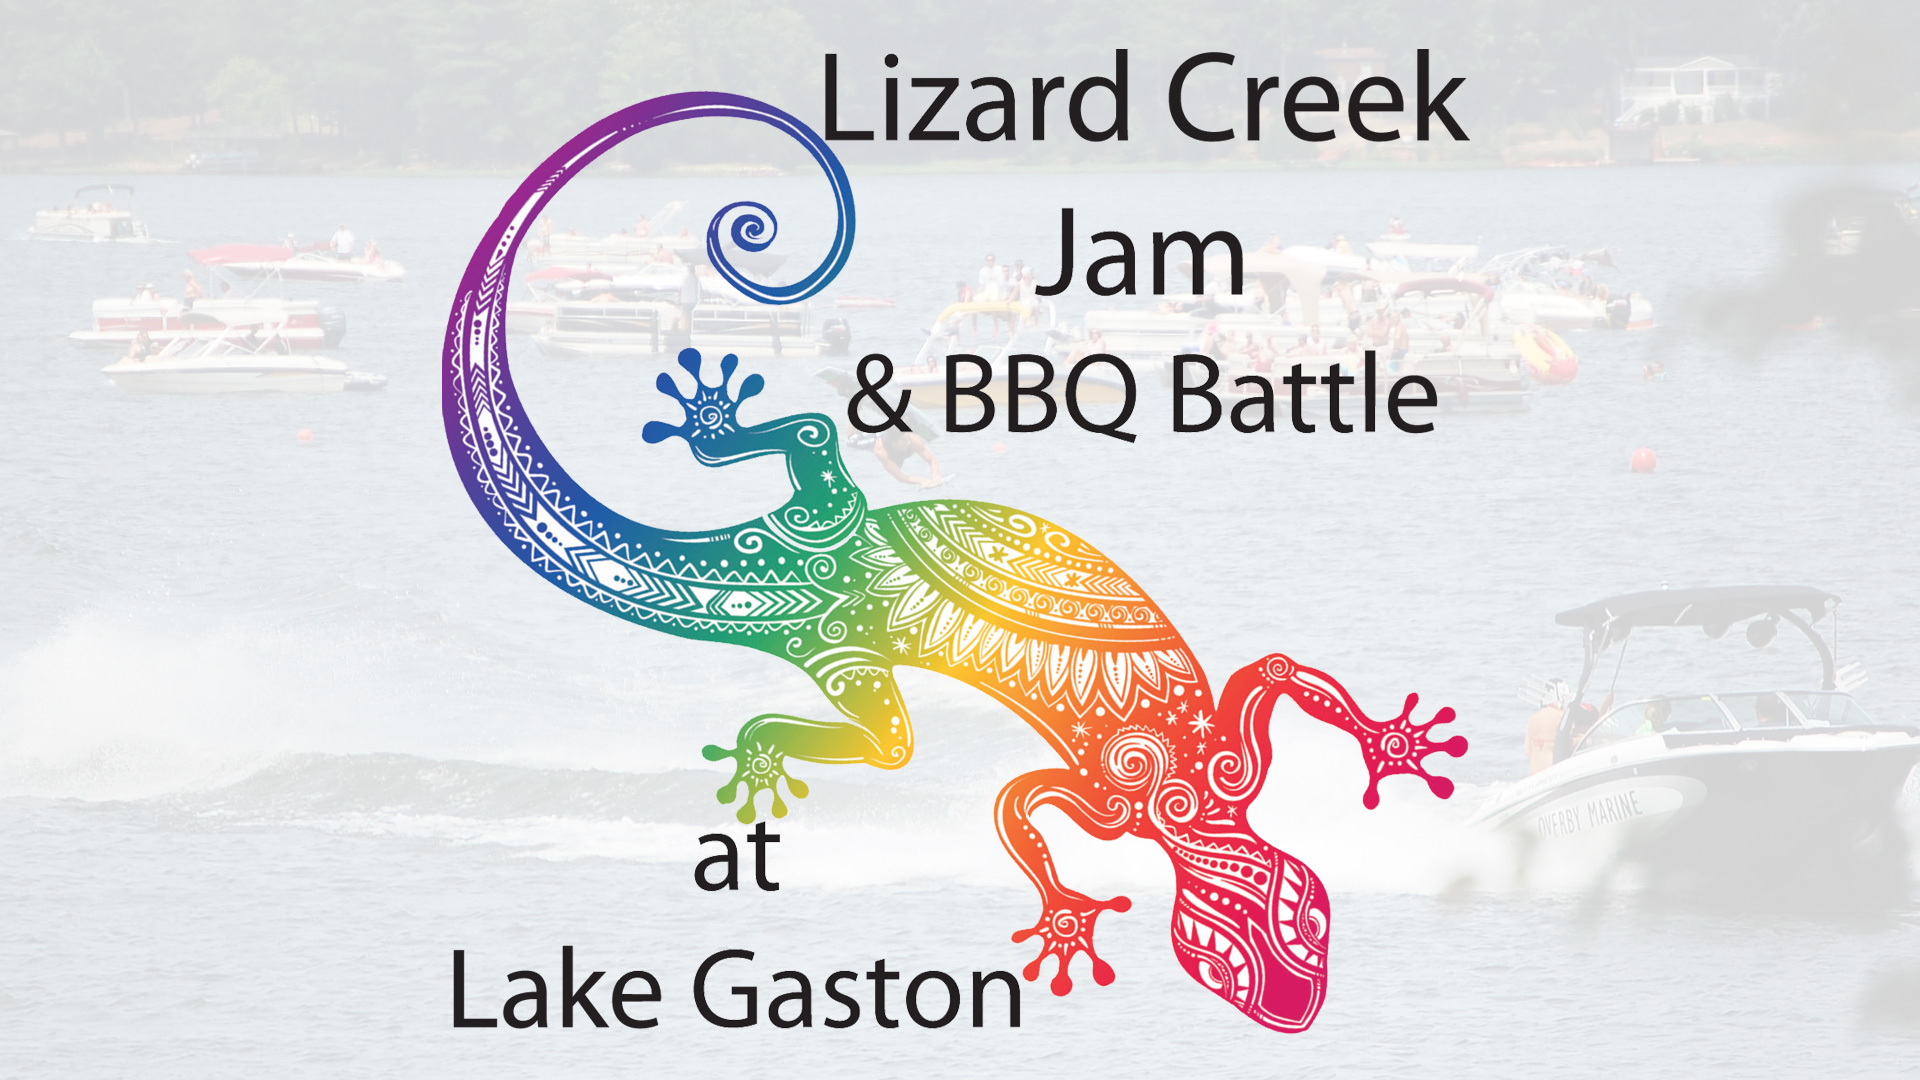 Lizard Creek Jam & BBQ Battle at Lake Gaston